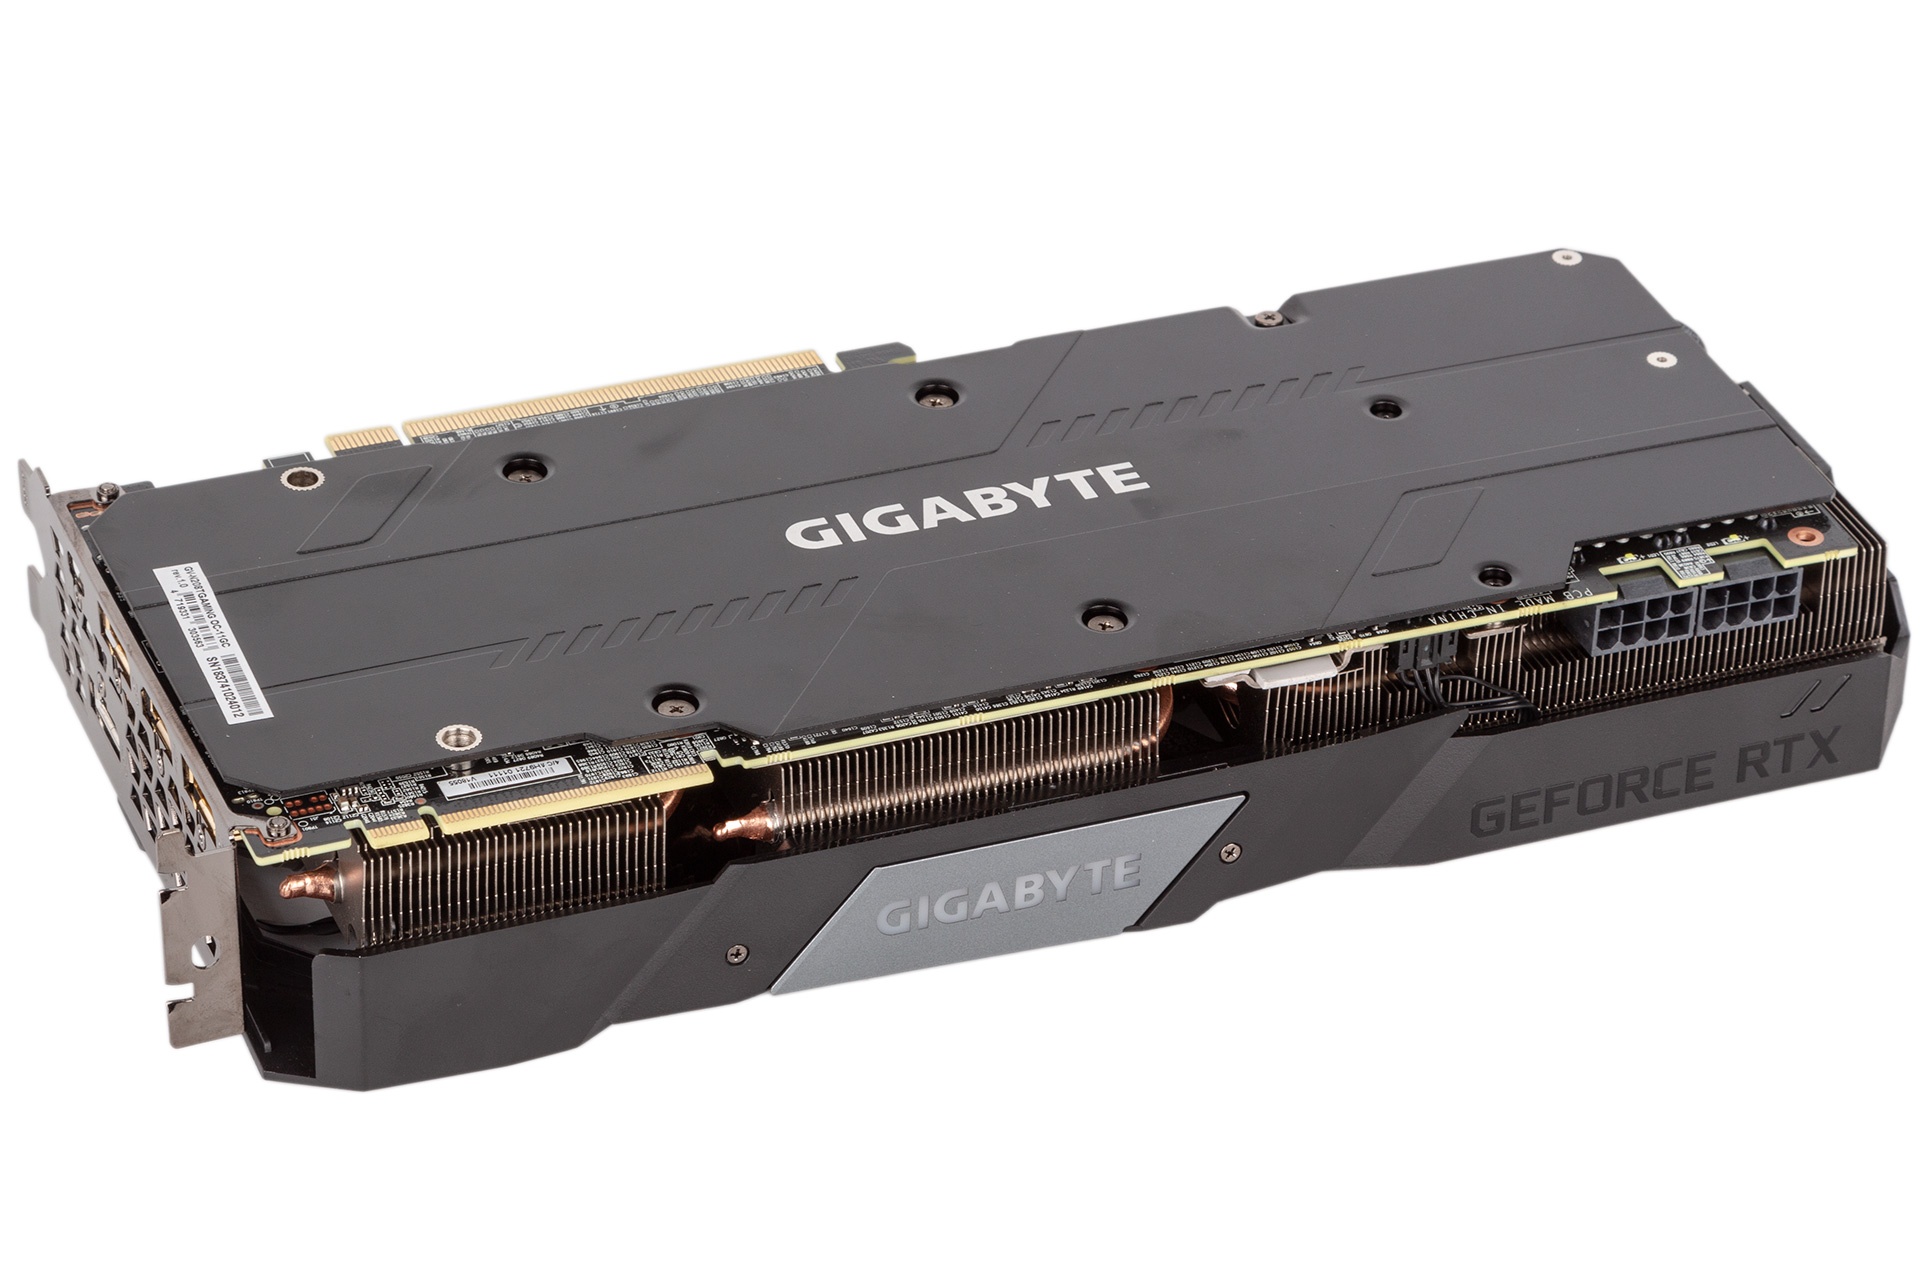 Gigabyte GeForce RTX 2080 Ti Gaming OC Review | bit-tech net